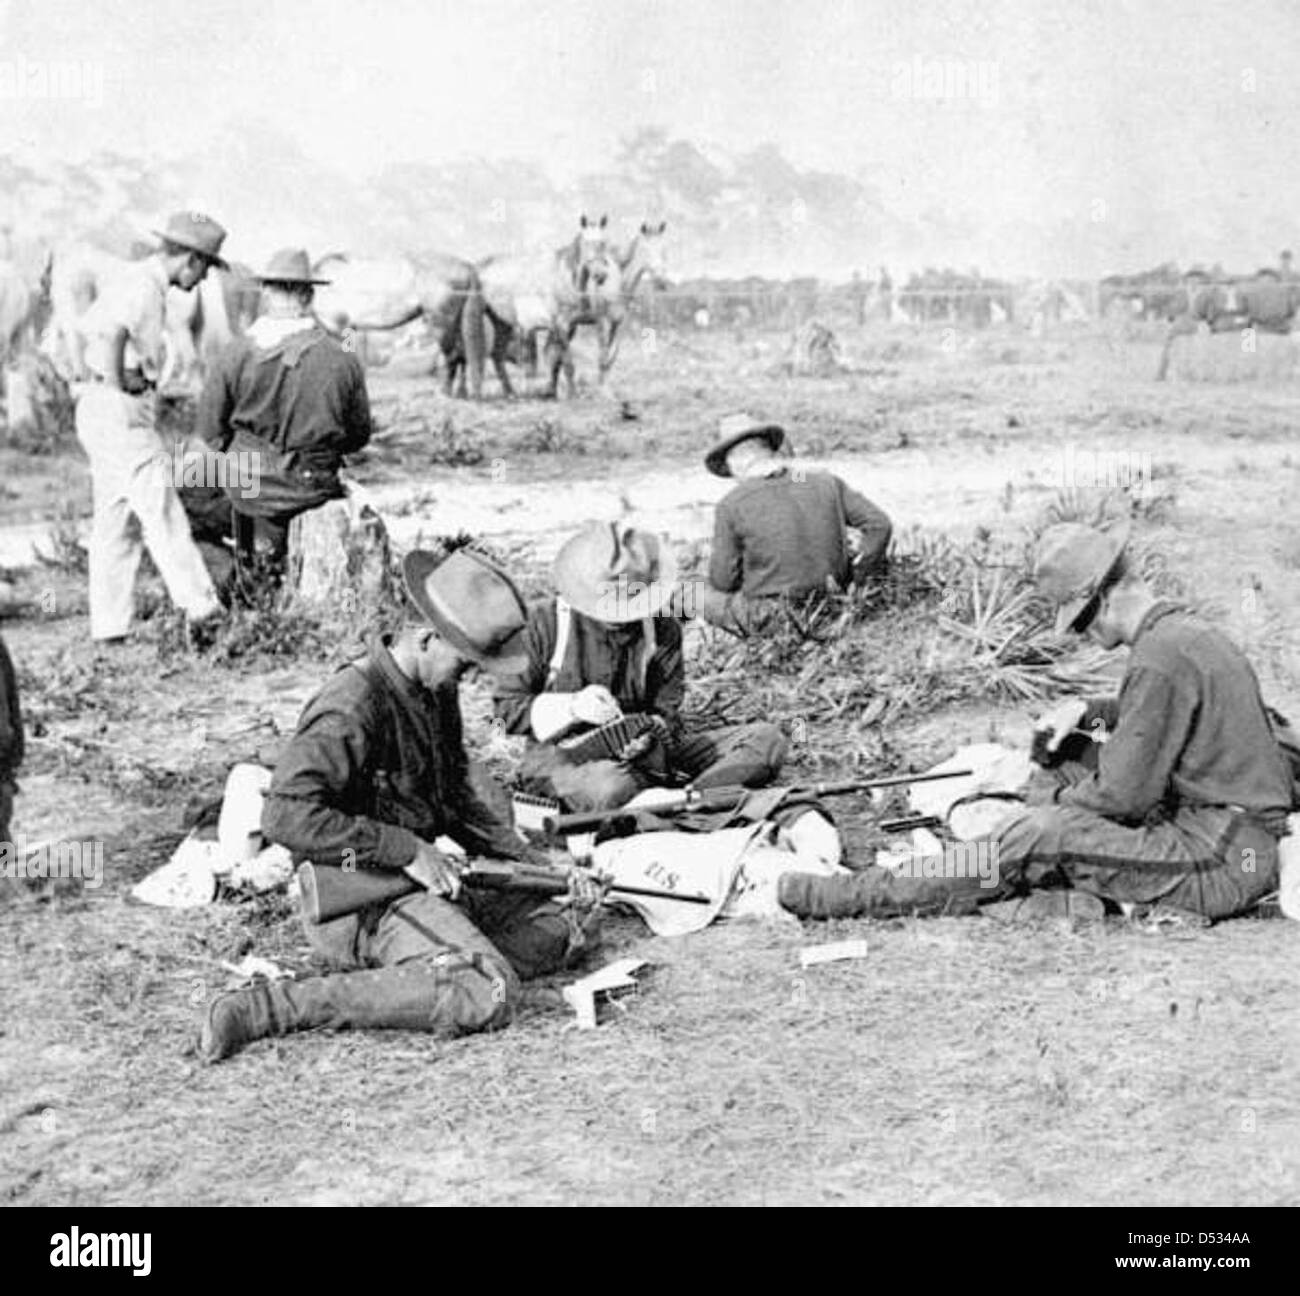 Rough Riders filling belts with cartridges - Stock Image